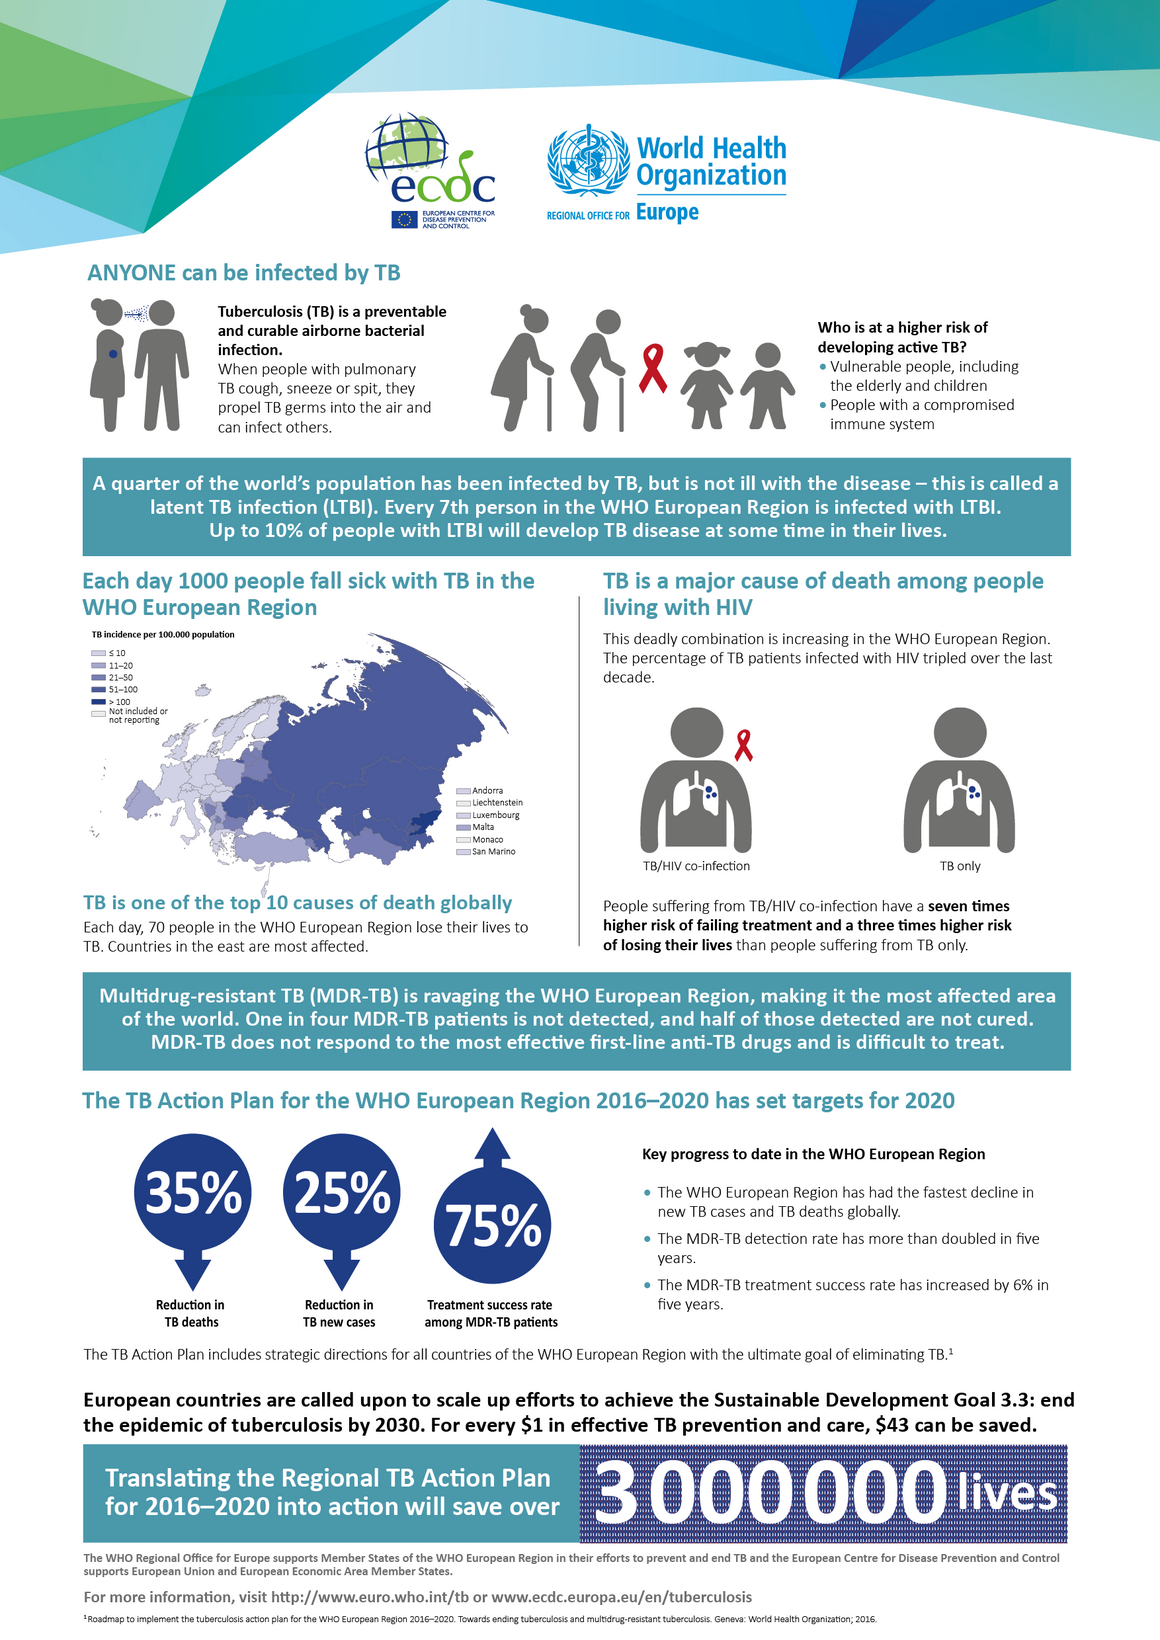 ECDC and WHO Regional Office for Europe tuberculosis fact sheet 2018